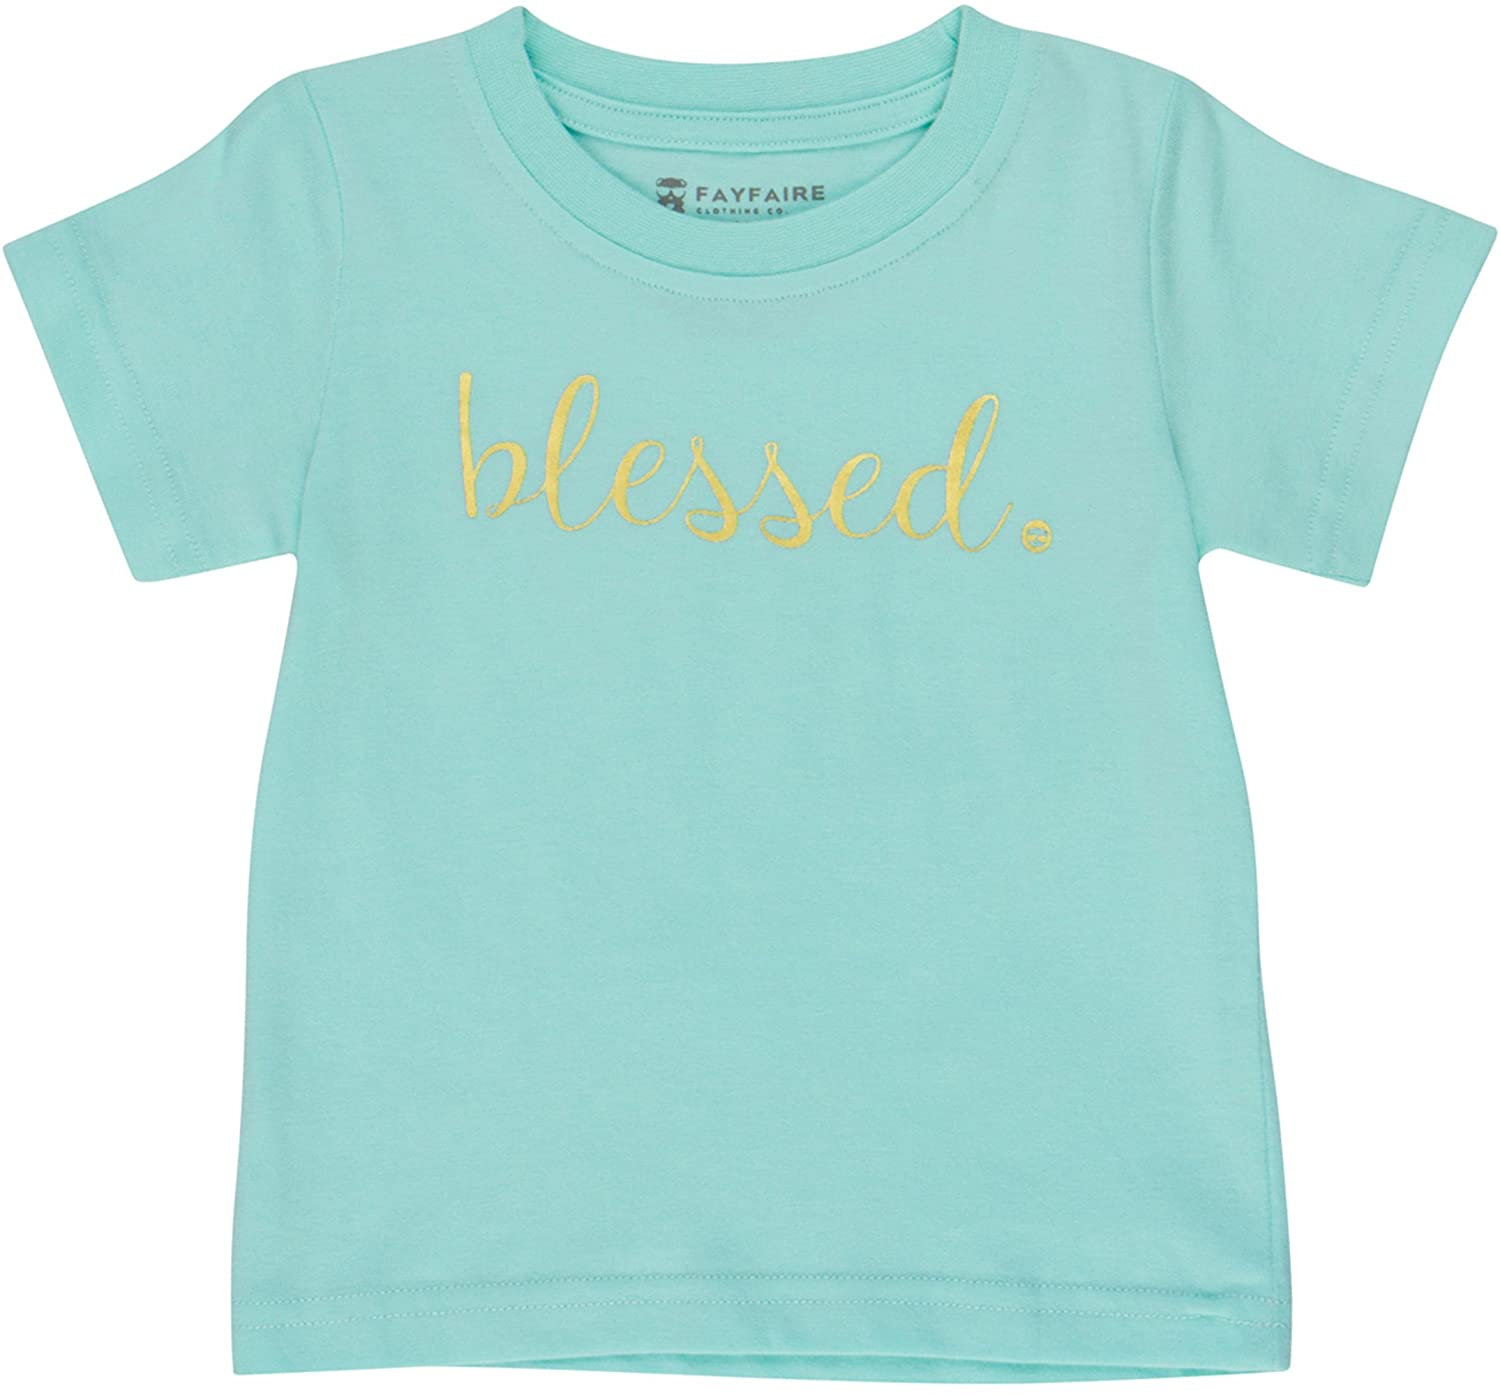 Baptism Gifts Christening Outfit by Fayfaire   Boutique Quality Blessed 2T BLESSED-Aqua2